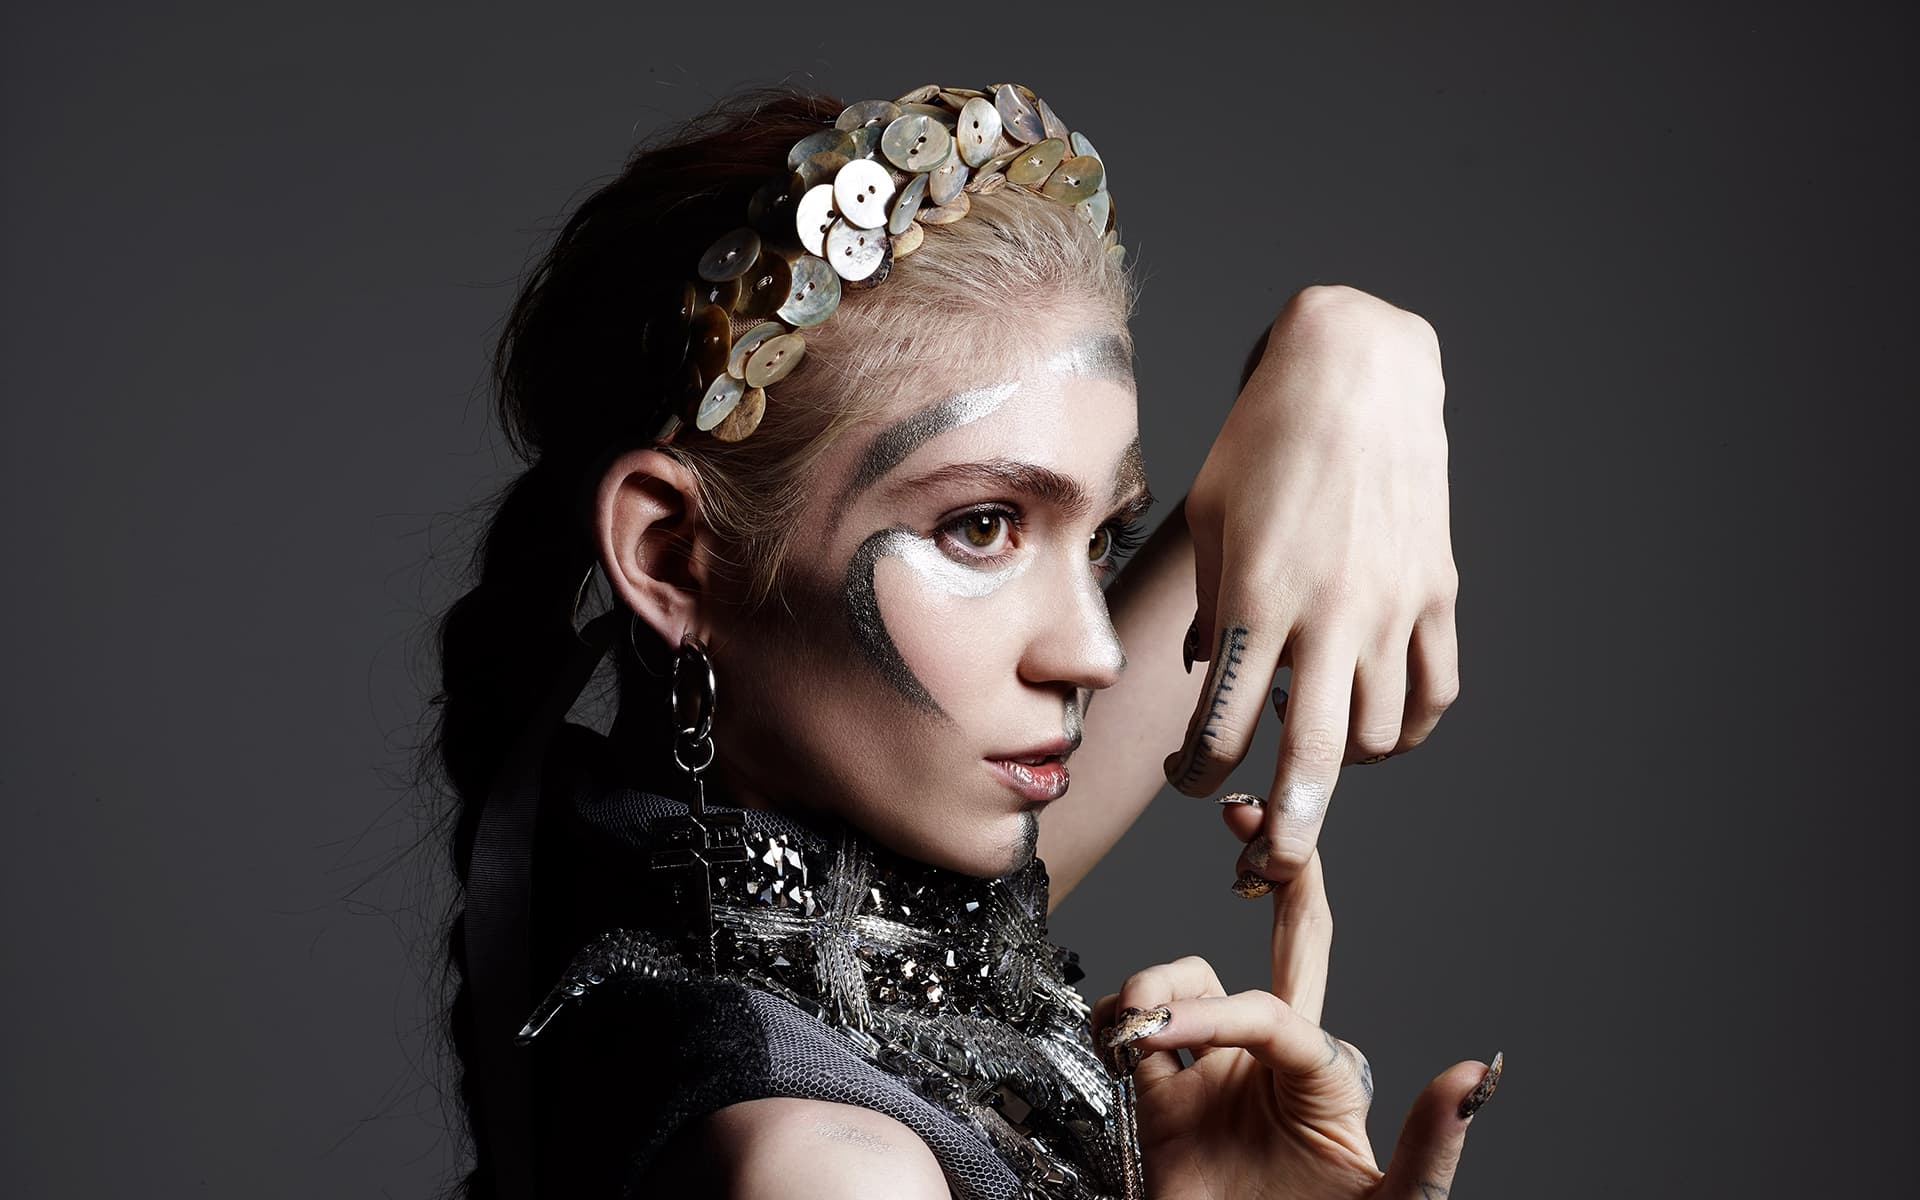 grimes wallpapers hd high quality download